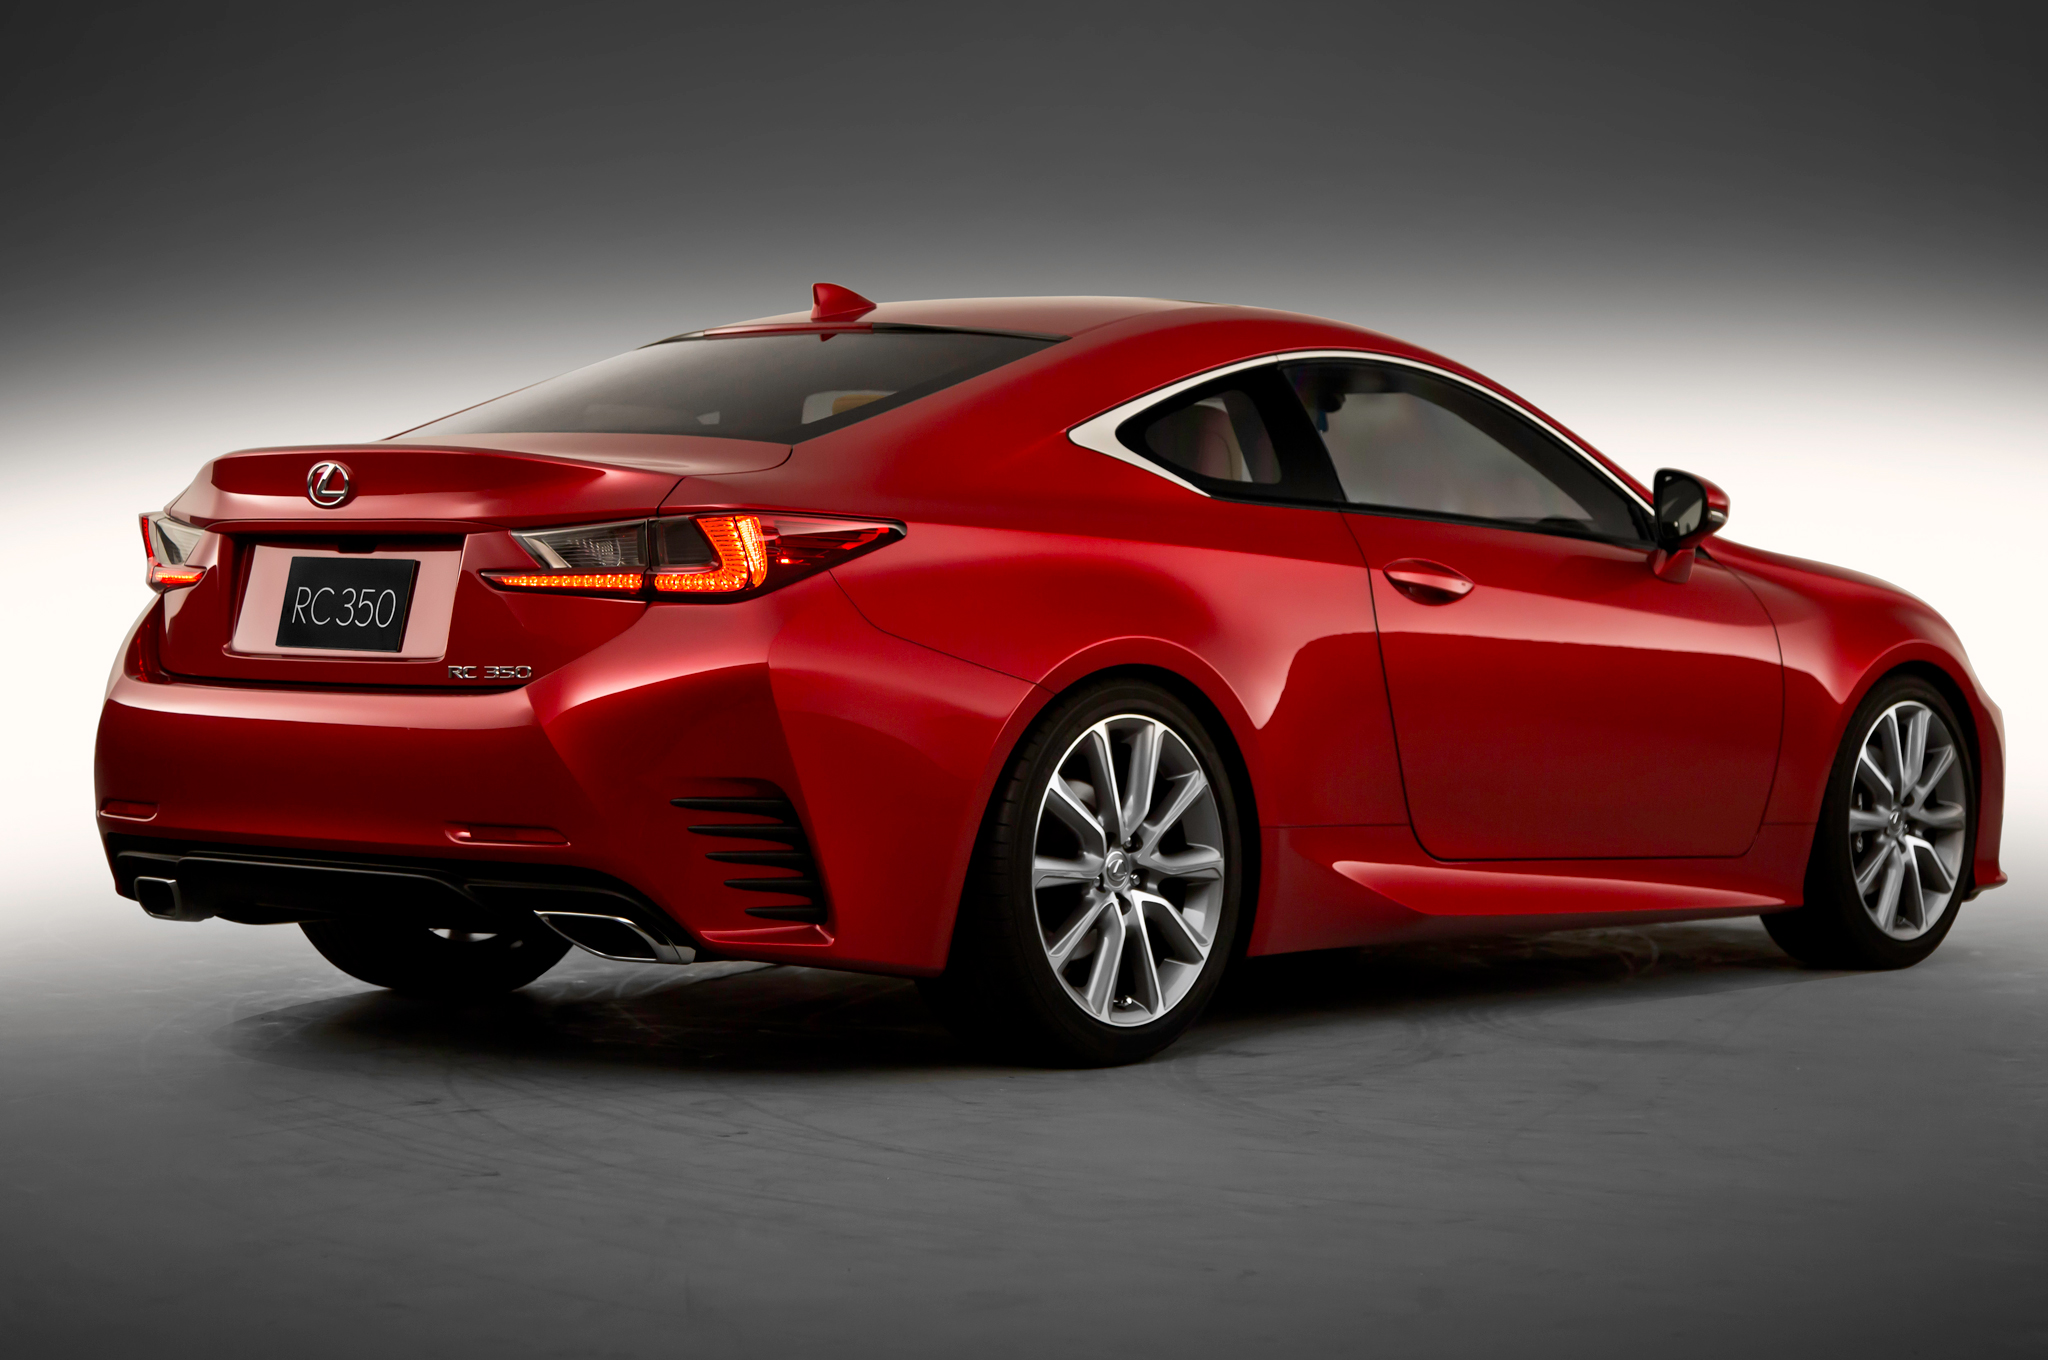 2015 lexus rc stuns some with true sports coupe appeal. Black Bedroom Furniture Sets. Home Design Ideas